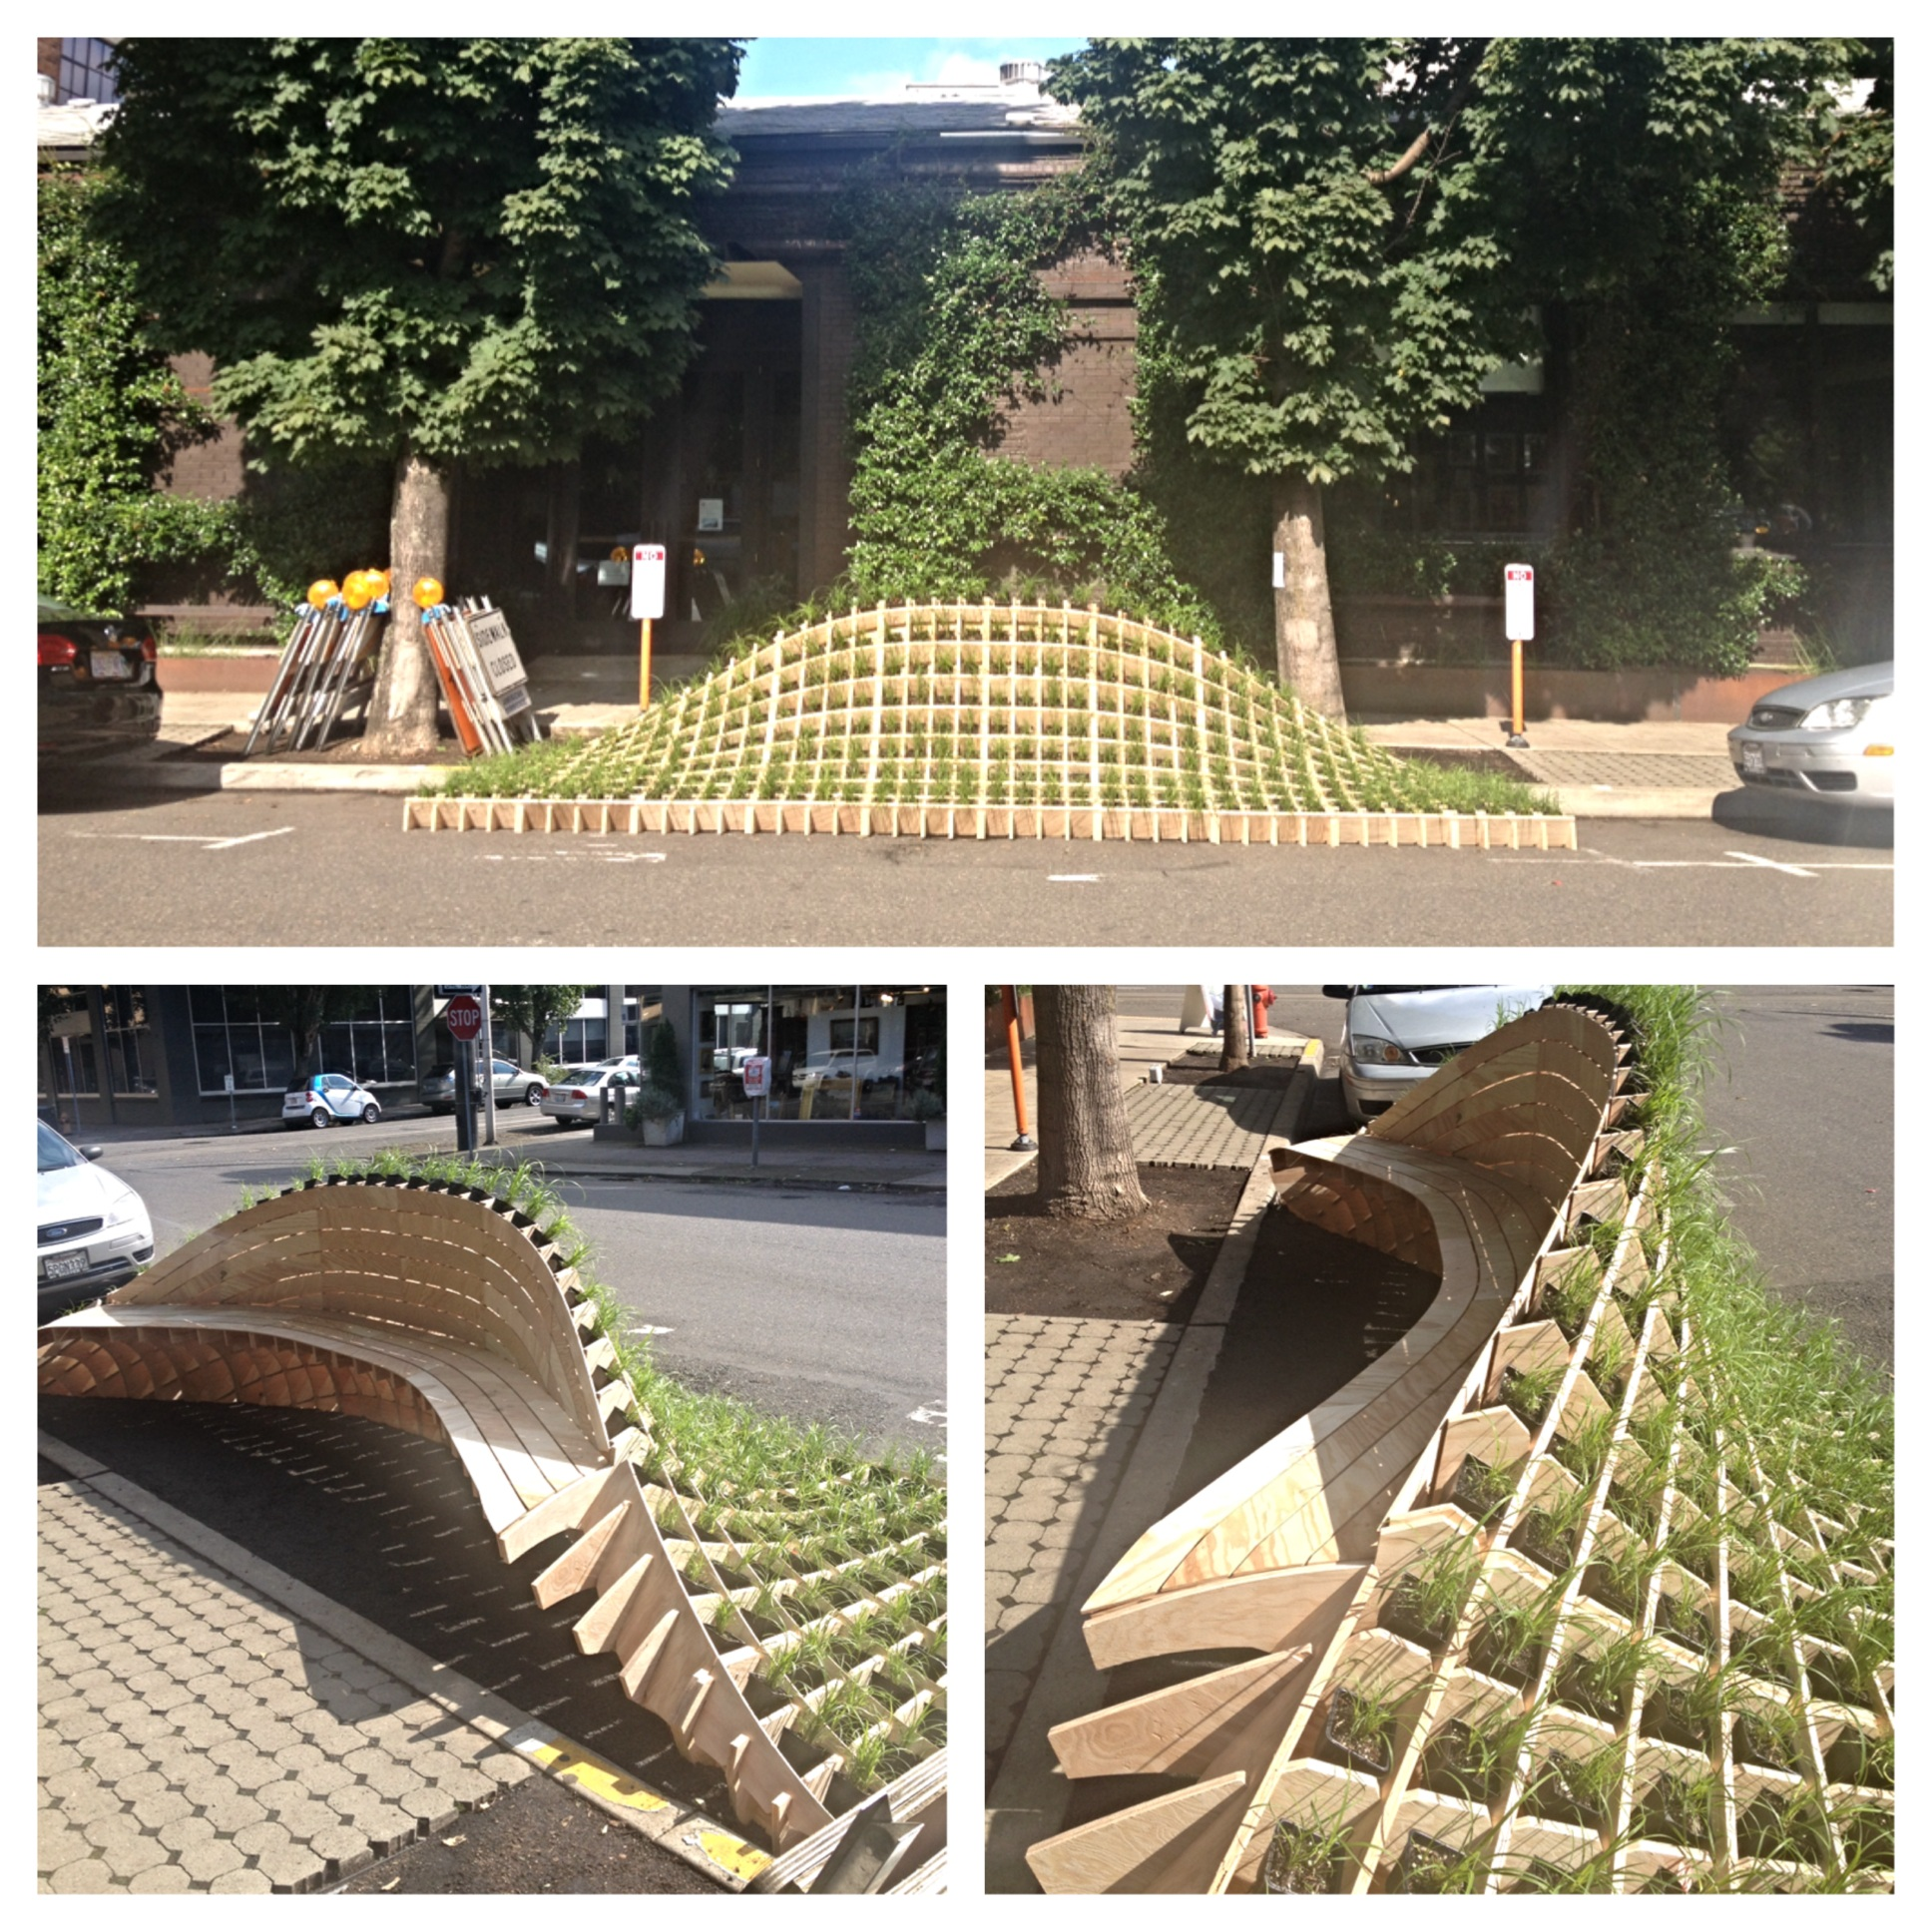 Architectural bench with plants